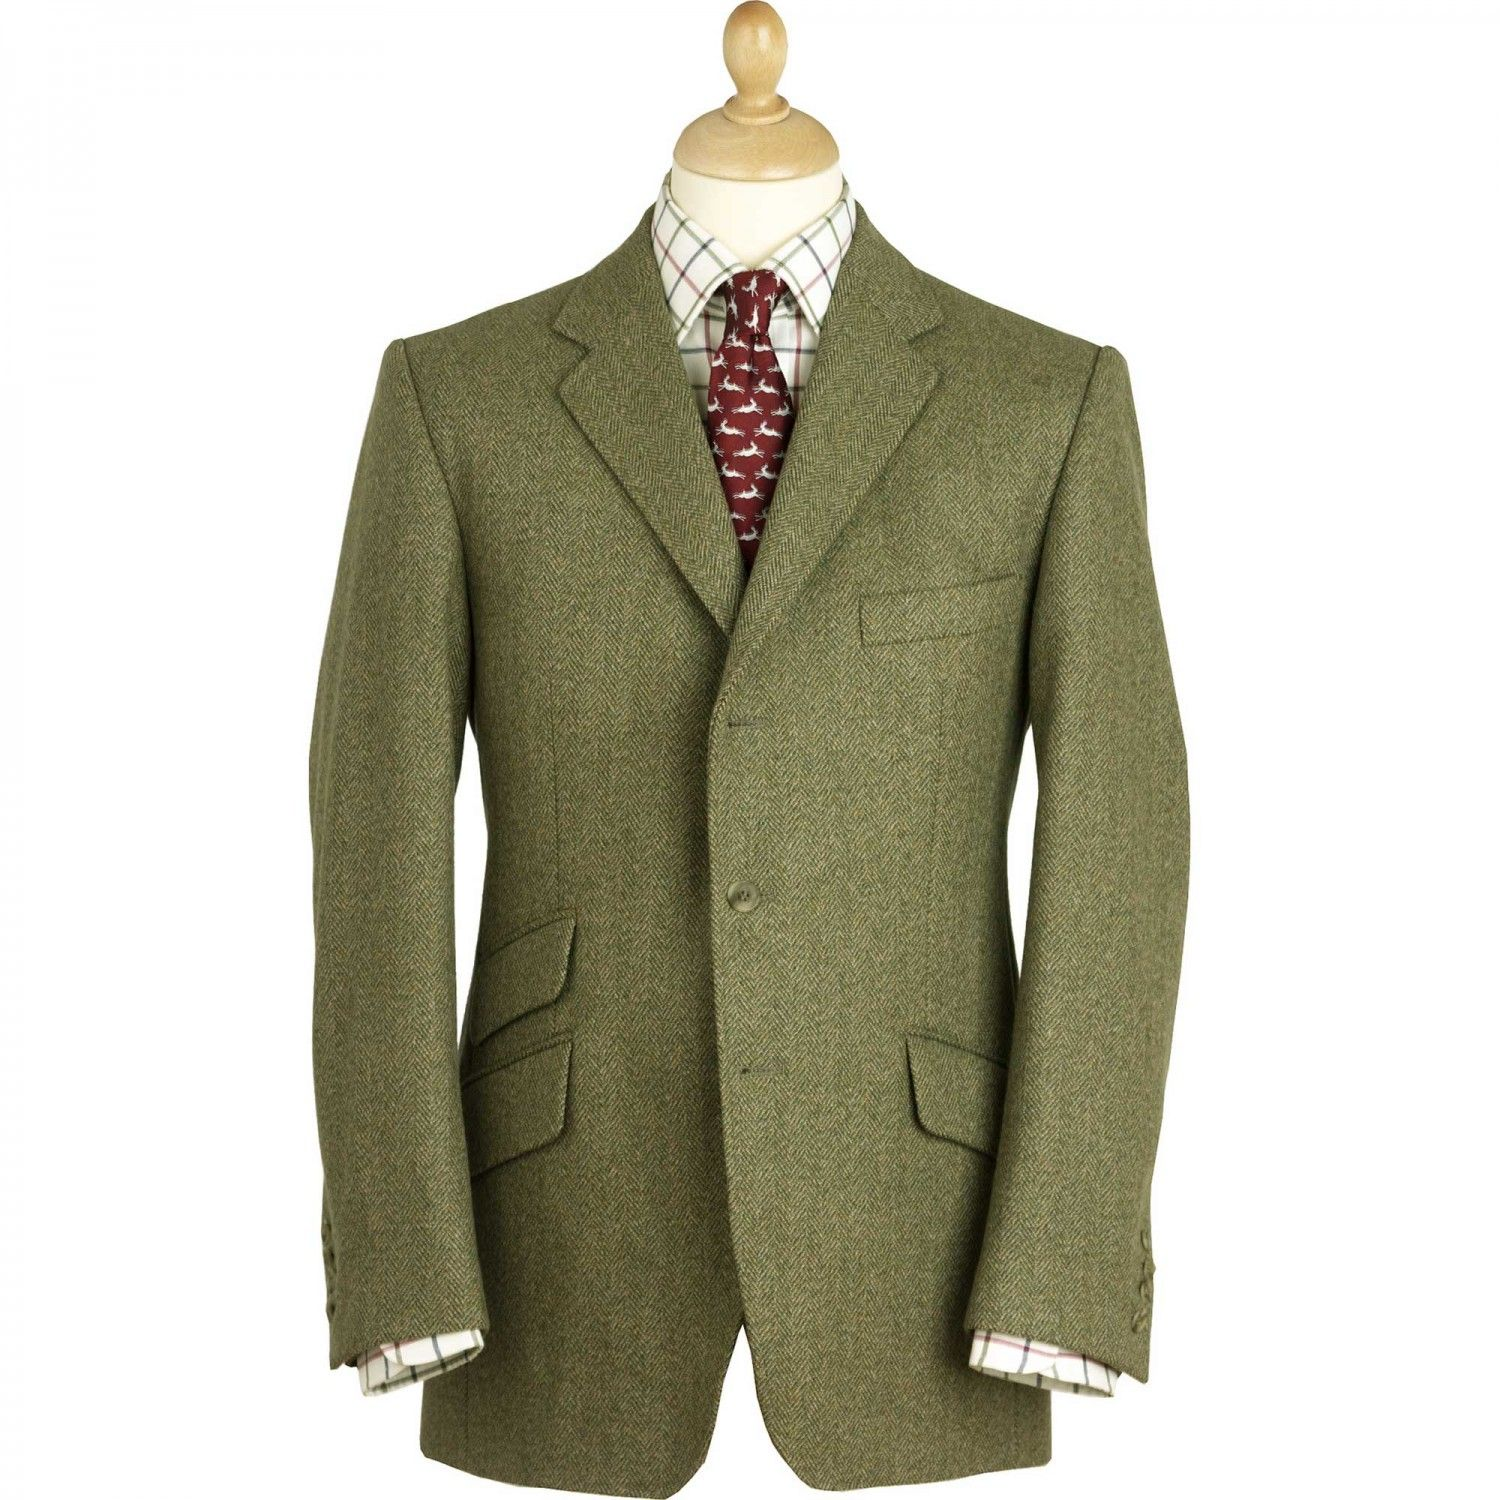 Firley Herringbone Tweed Jacket | Jackets | Menswear | Hunting ...